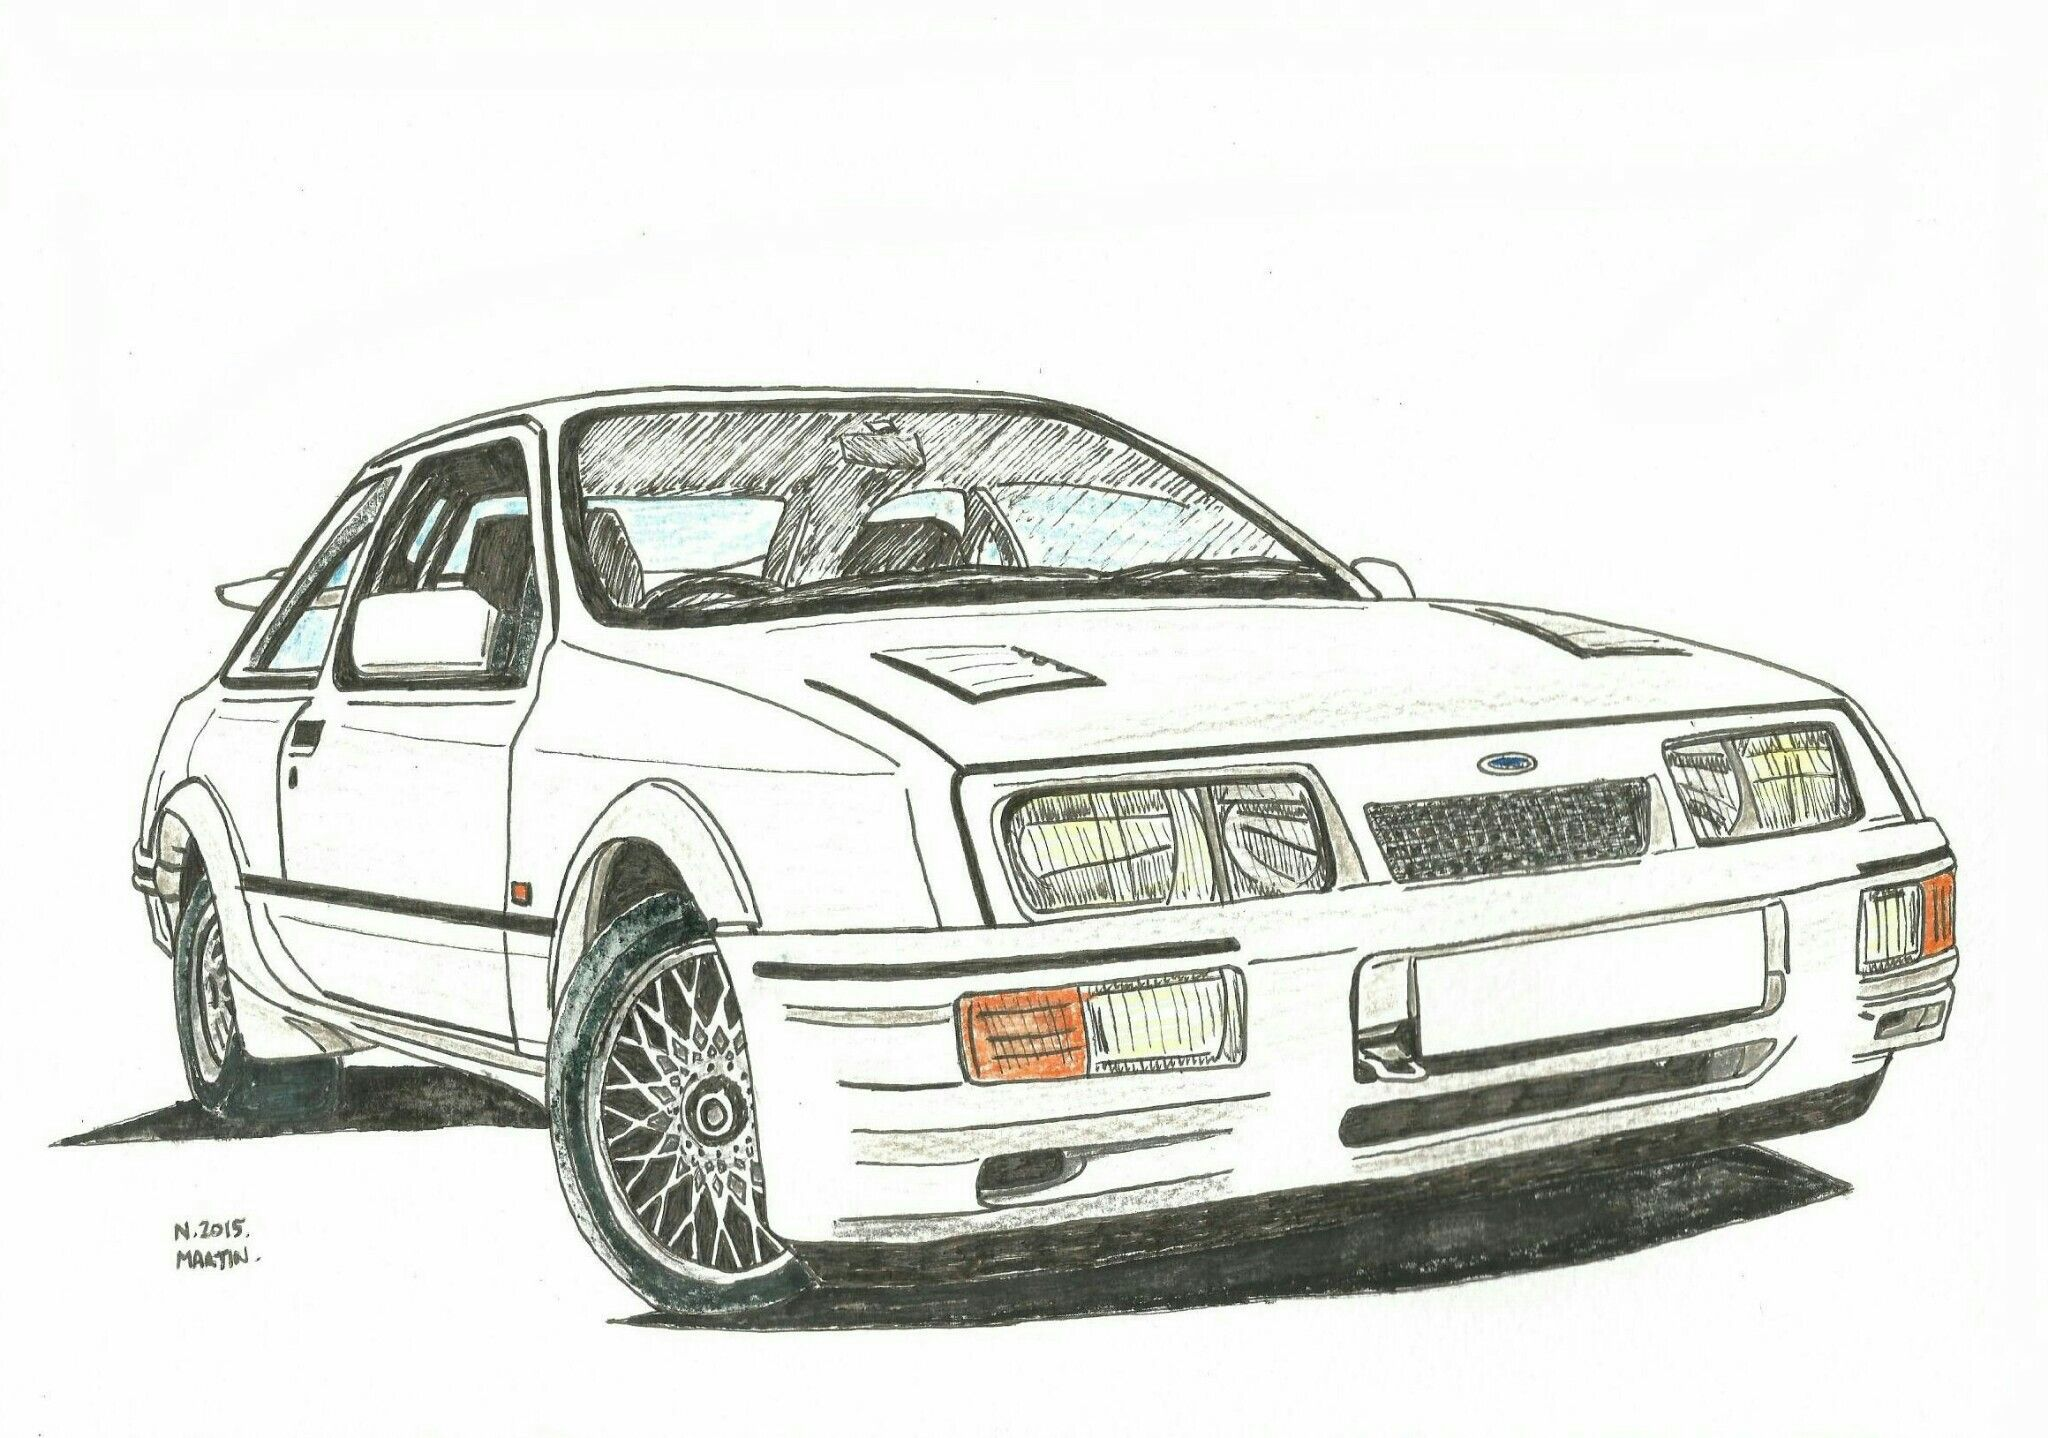 Ford Sierra Rs Cosworth Drawing My Drawing Of A Ford Sierra Rs